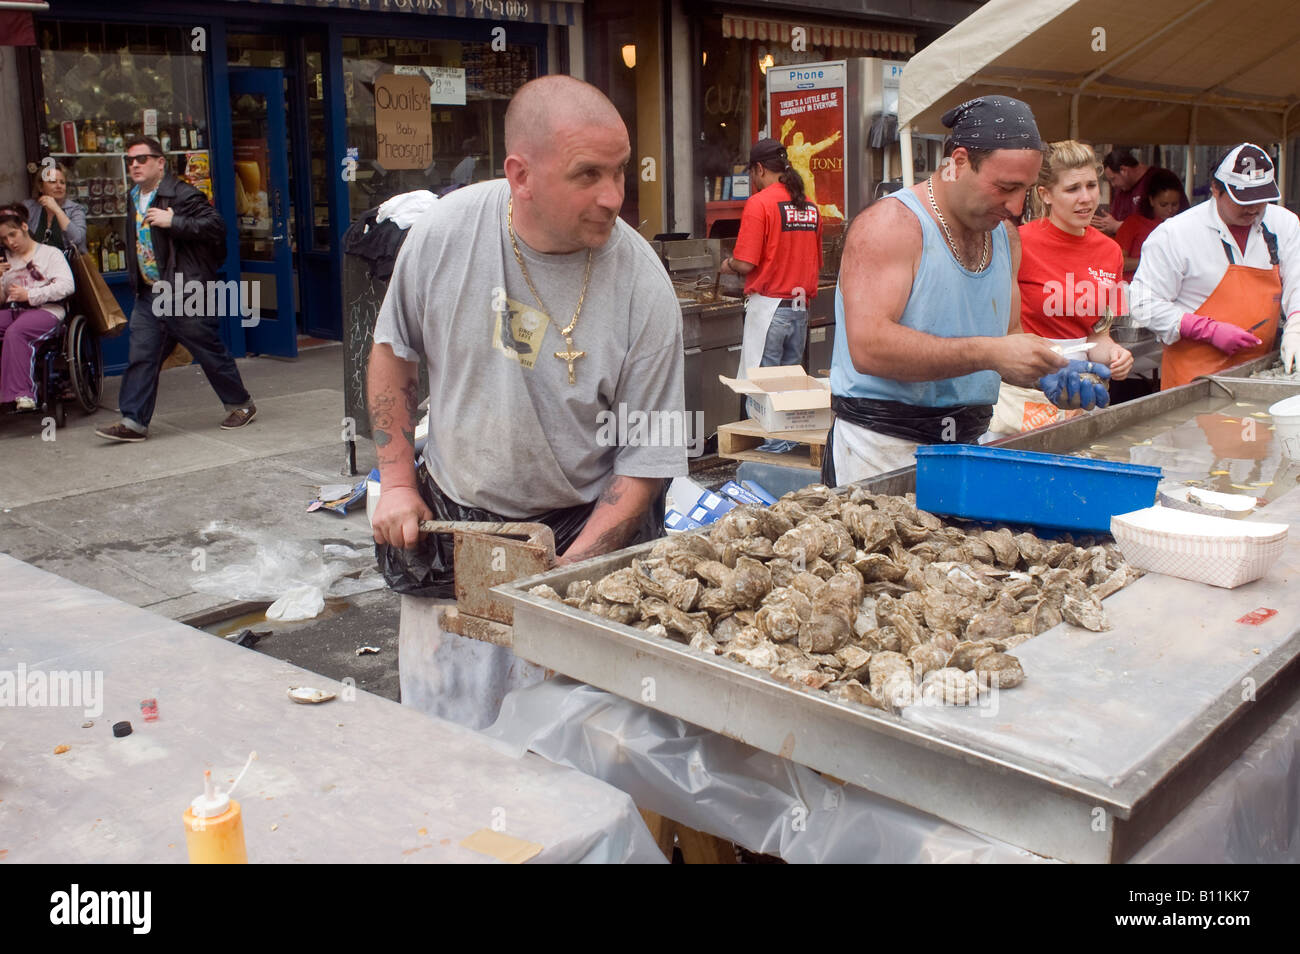 Oyster shucking at the famous Ninth Avenue Food Festival in New York - Stock Image